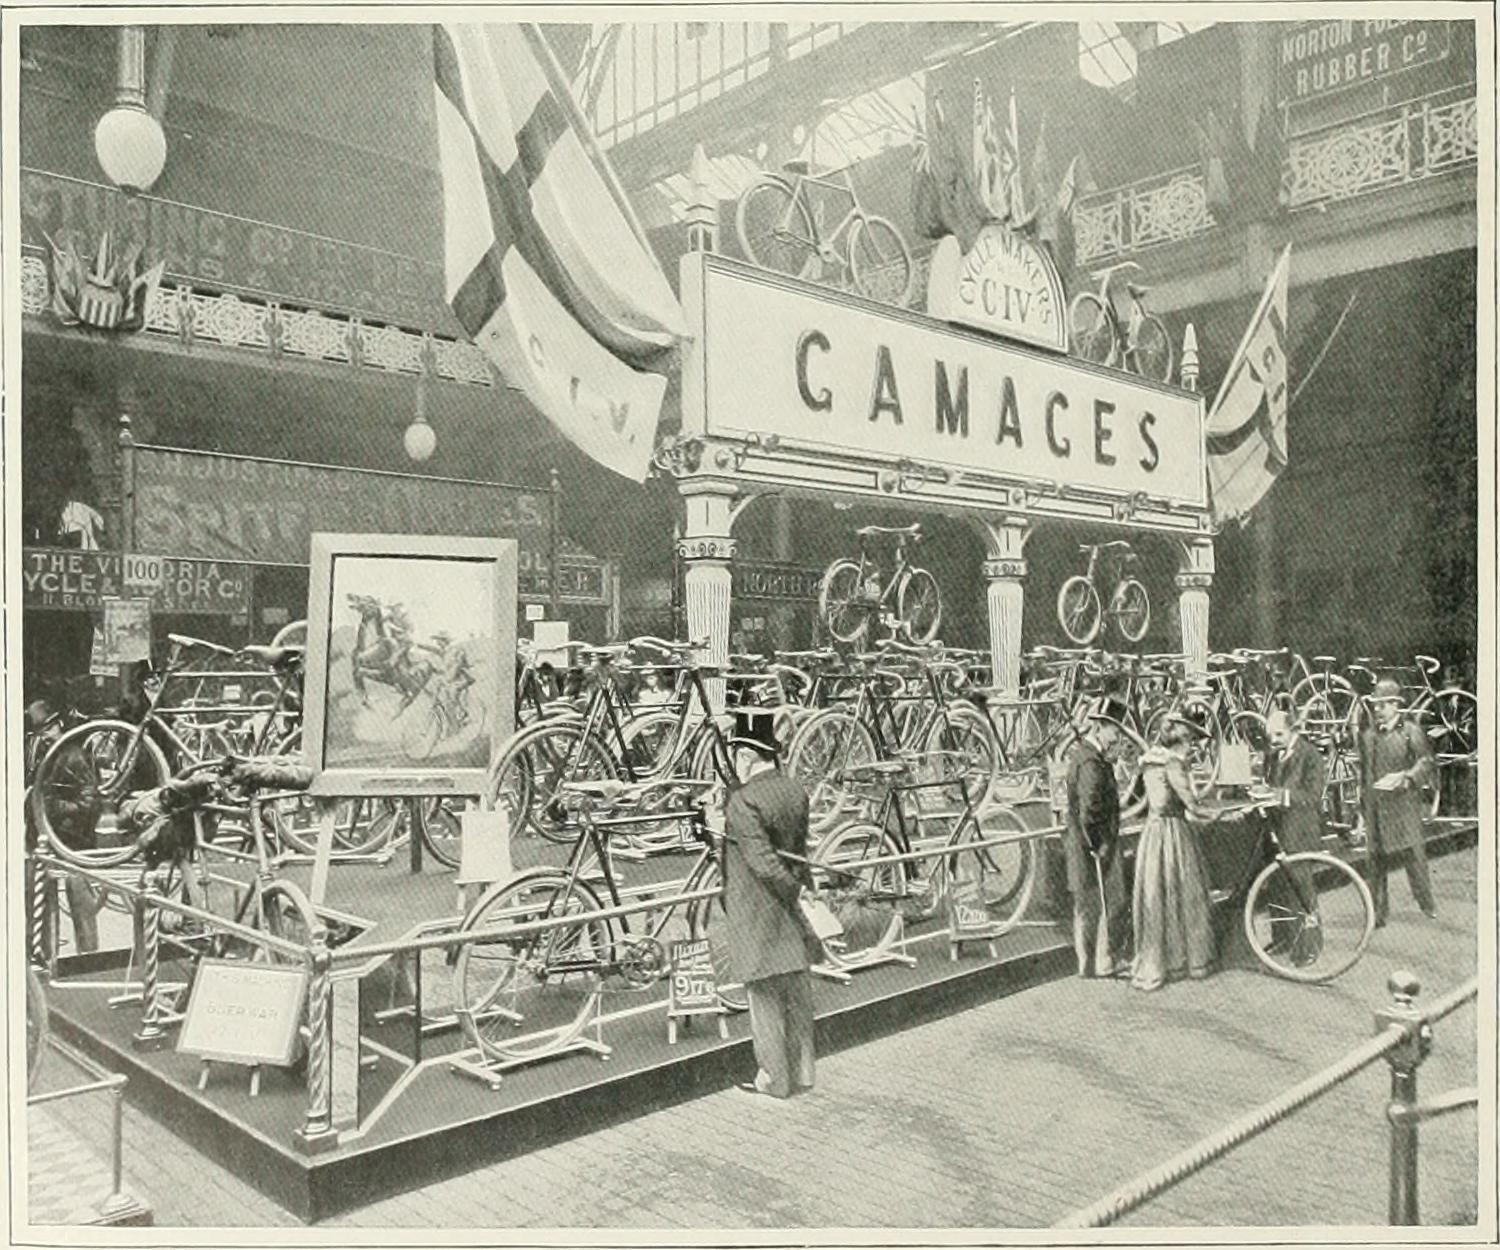 A cycle show at Agricultural Hall in Islington. Gamages was a department store in Holborn.